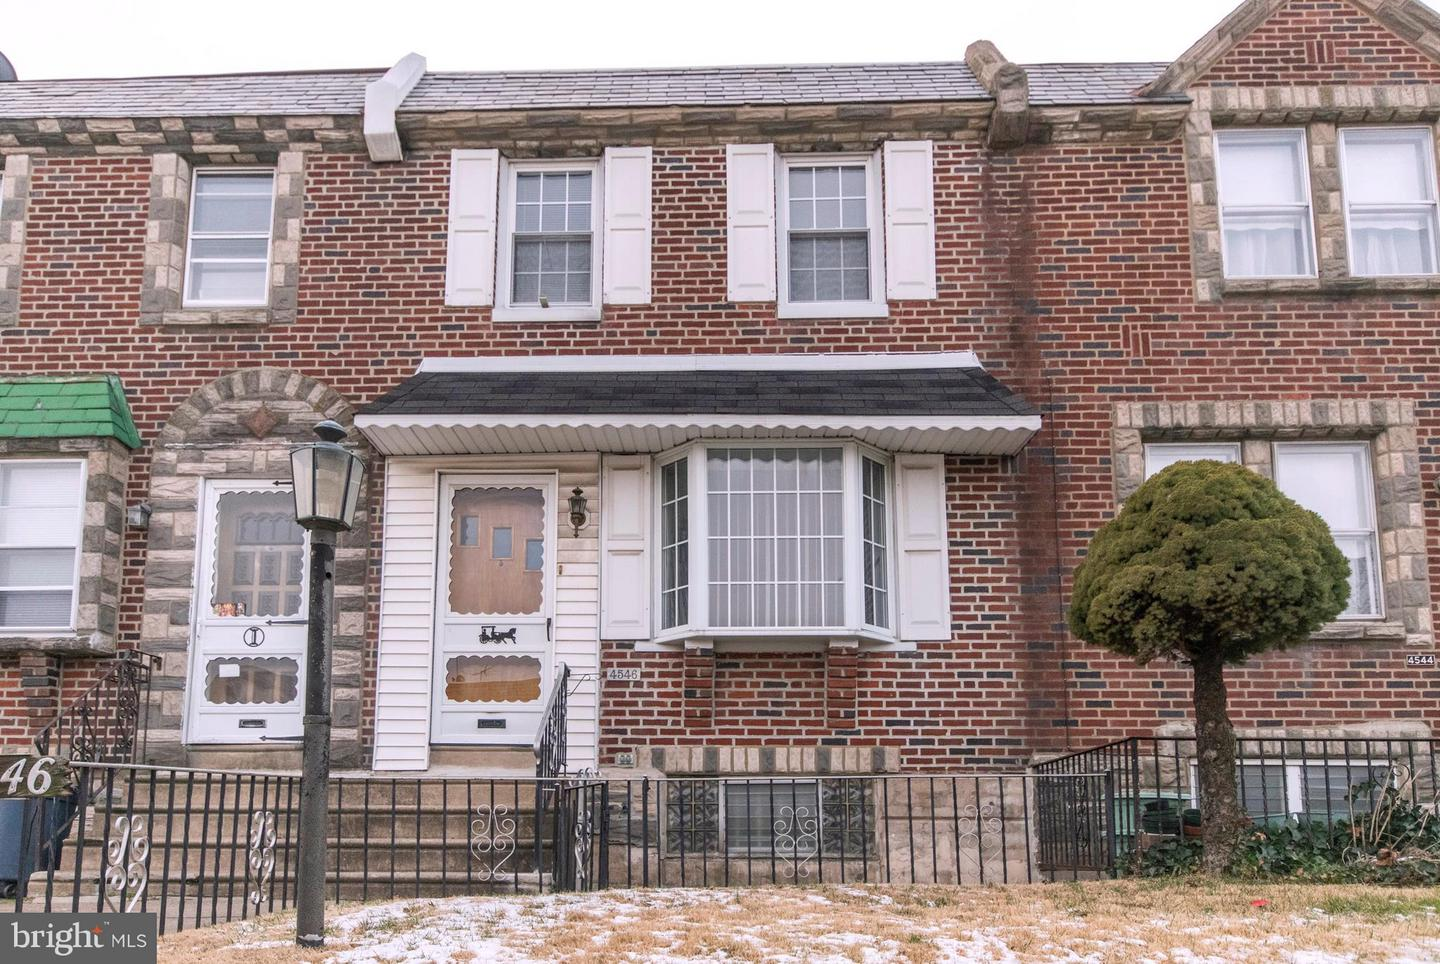 4546 Shelmire Avenue Philadelphia, PA 19136